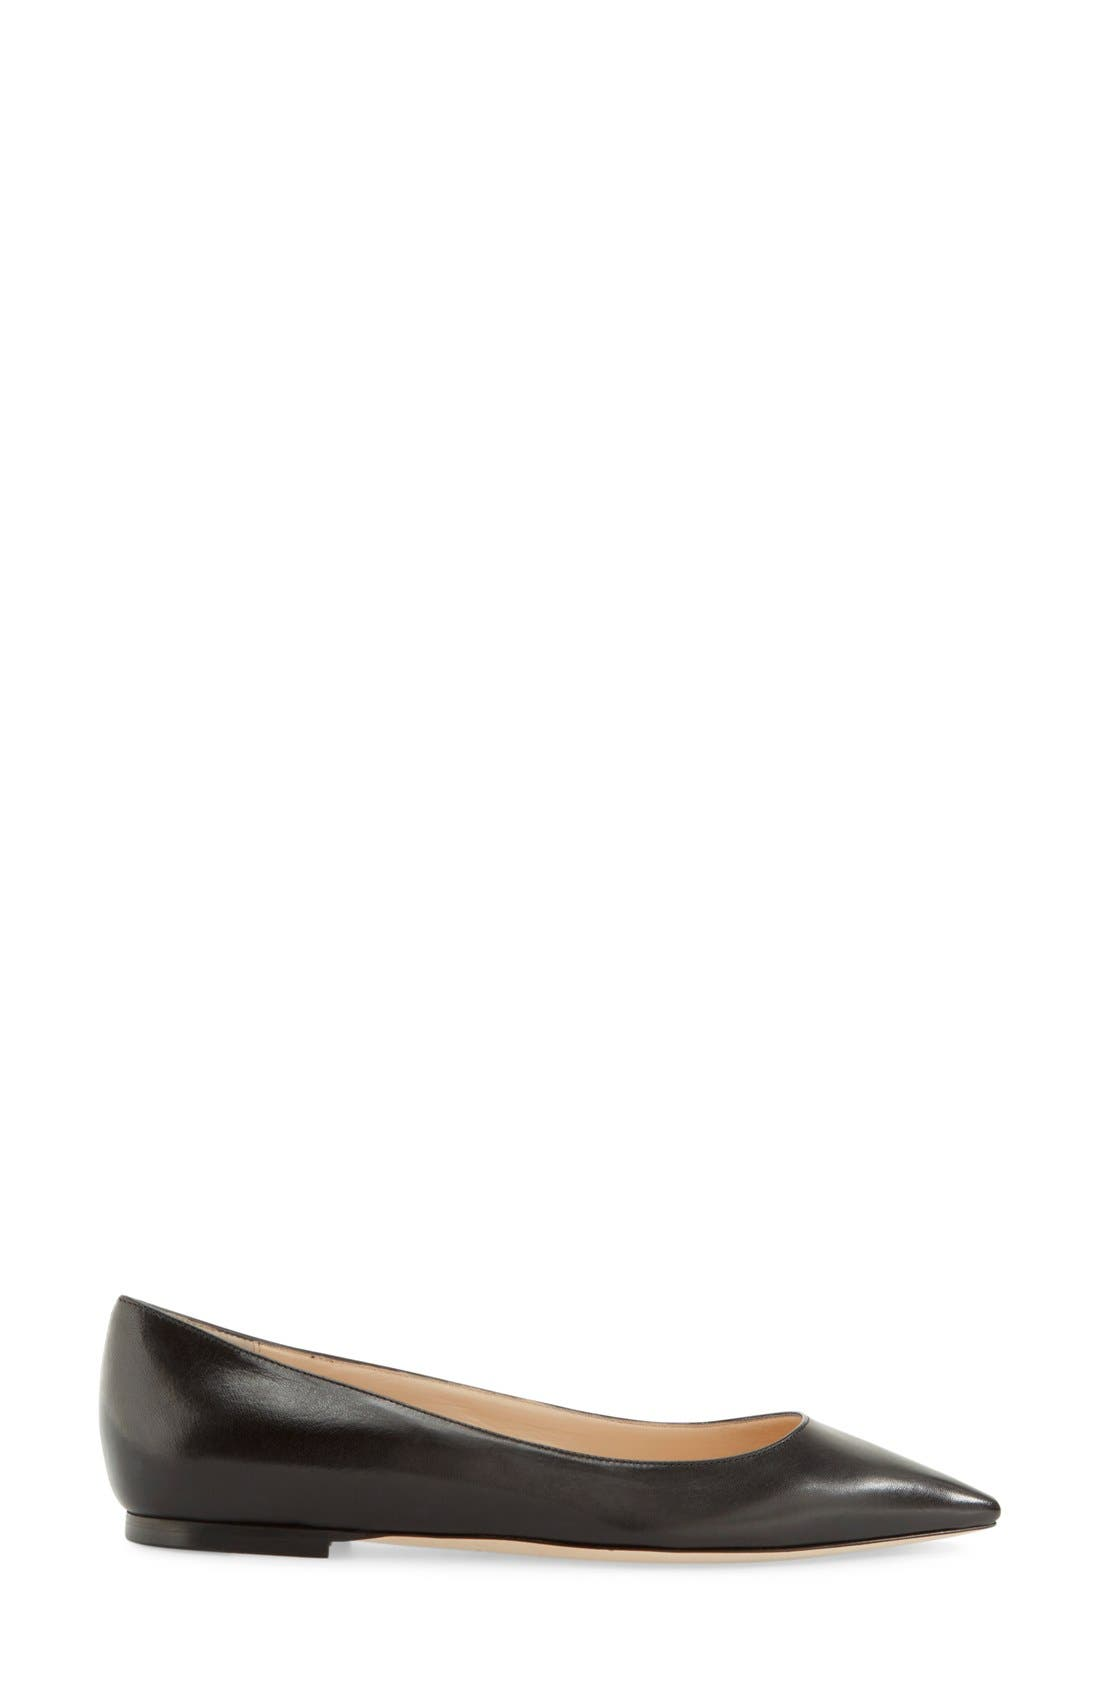 'Romy' Pointy Toe Flat,                             Alternate thumbnail 35, color,